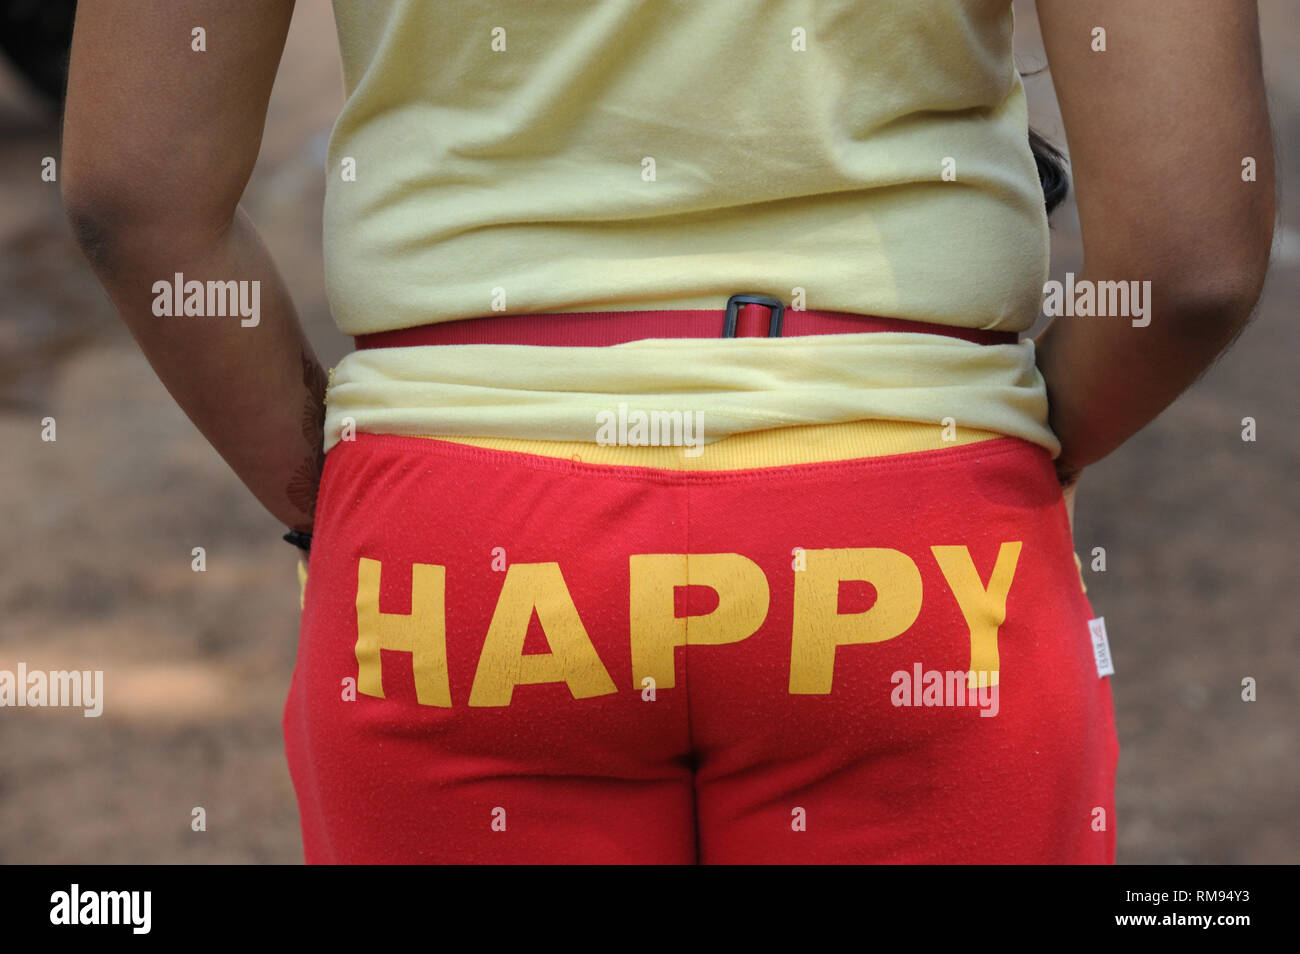 happy printed on pants back, India, Asia, MR#364 - Stock Image